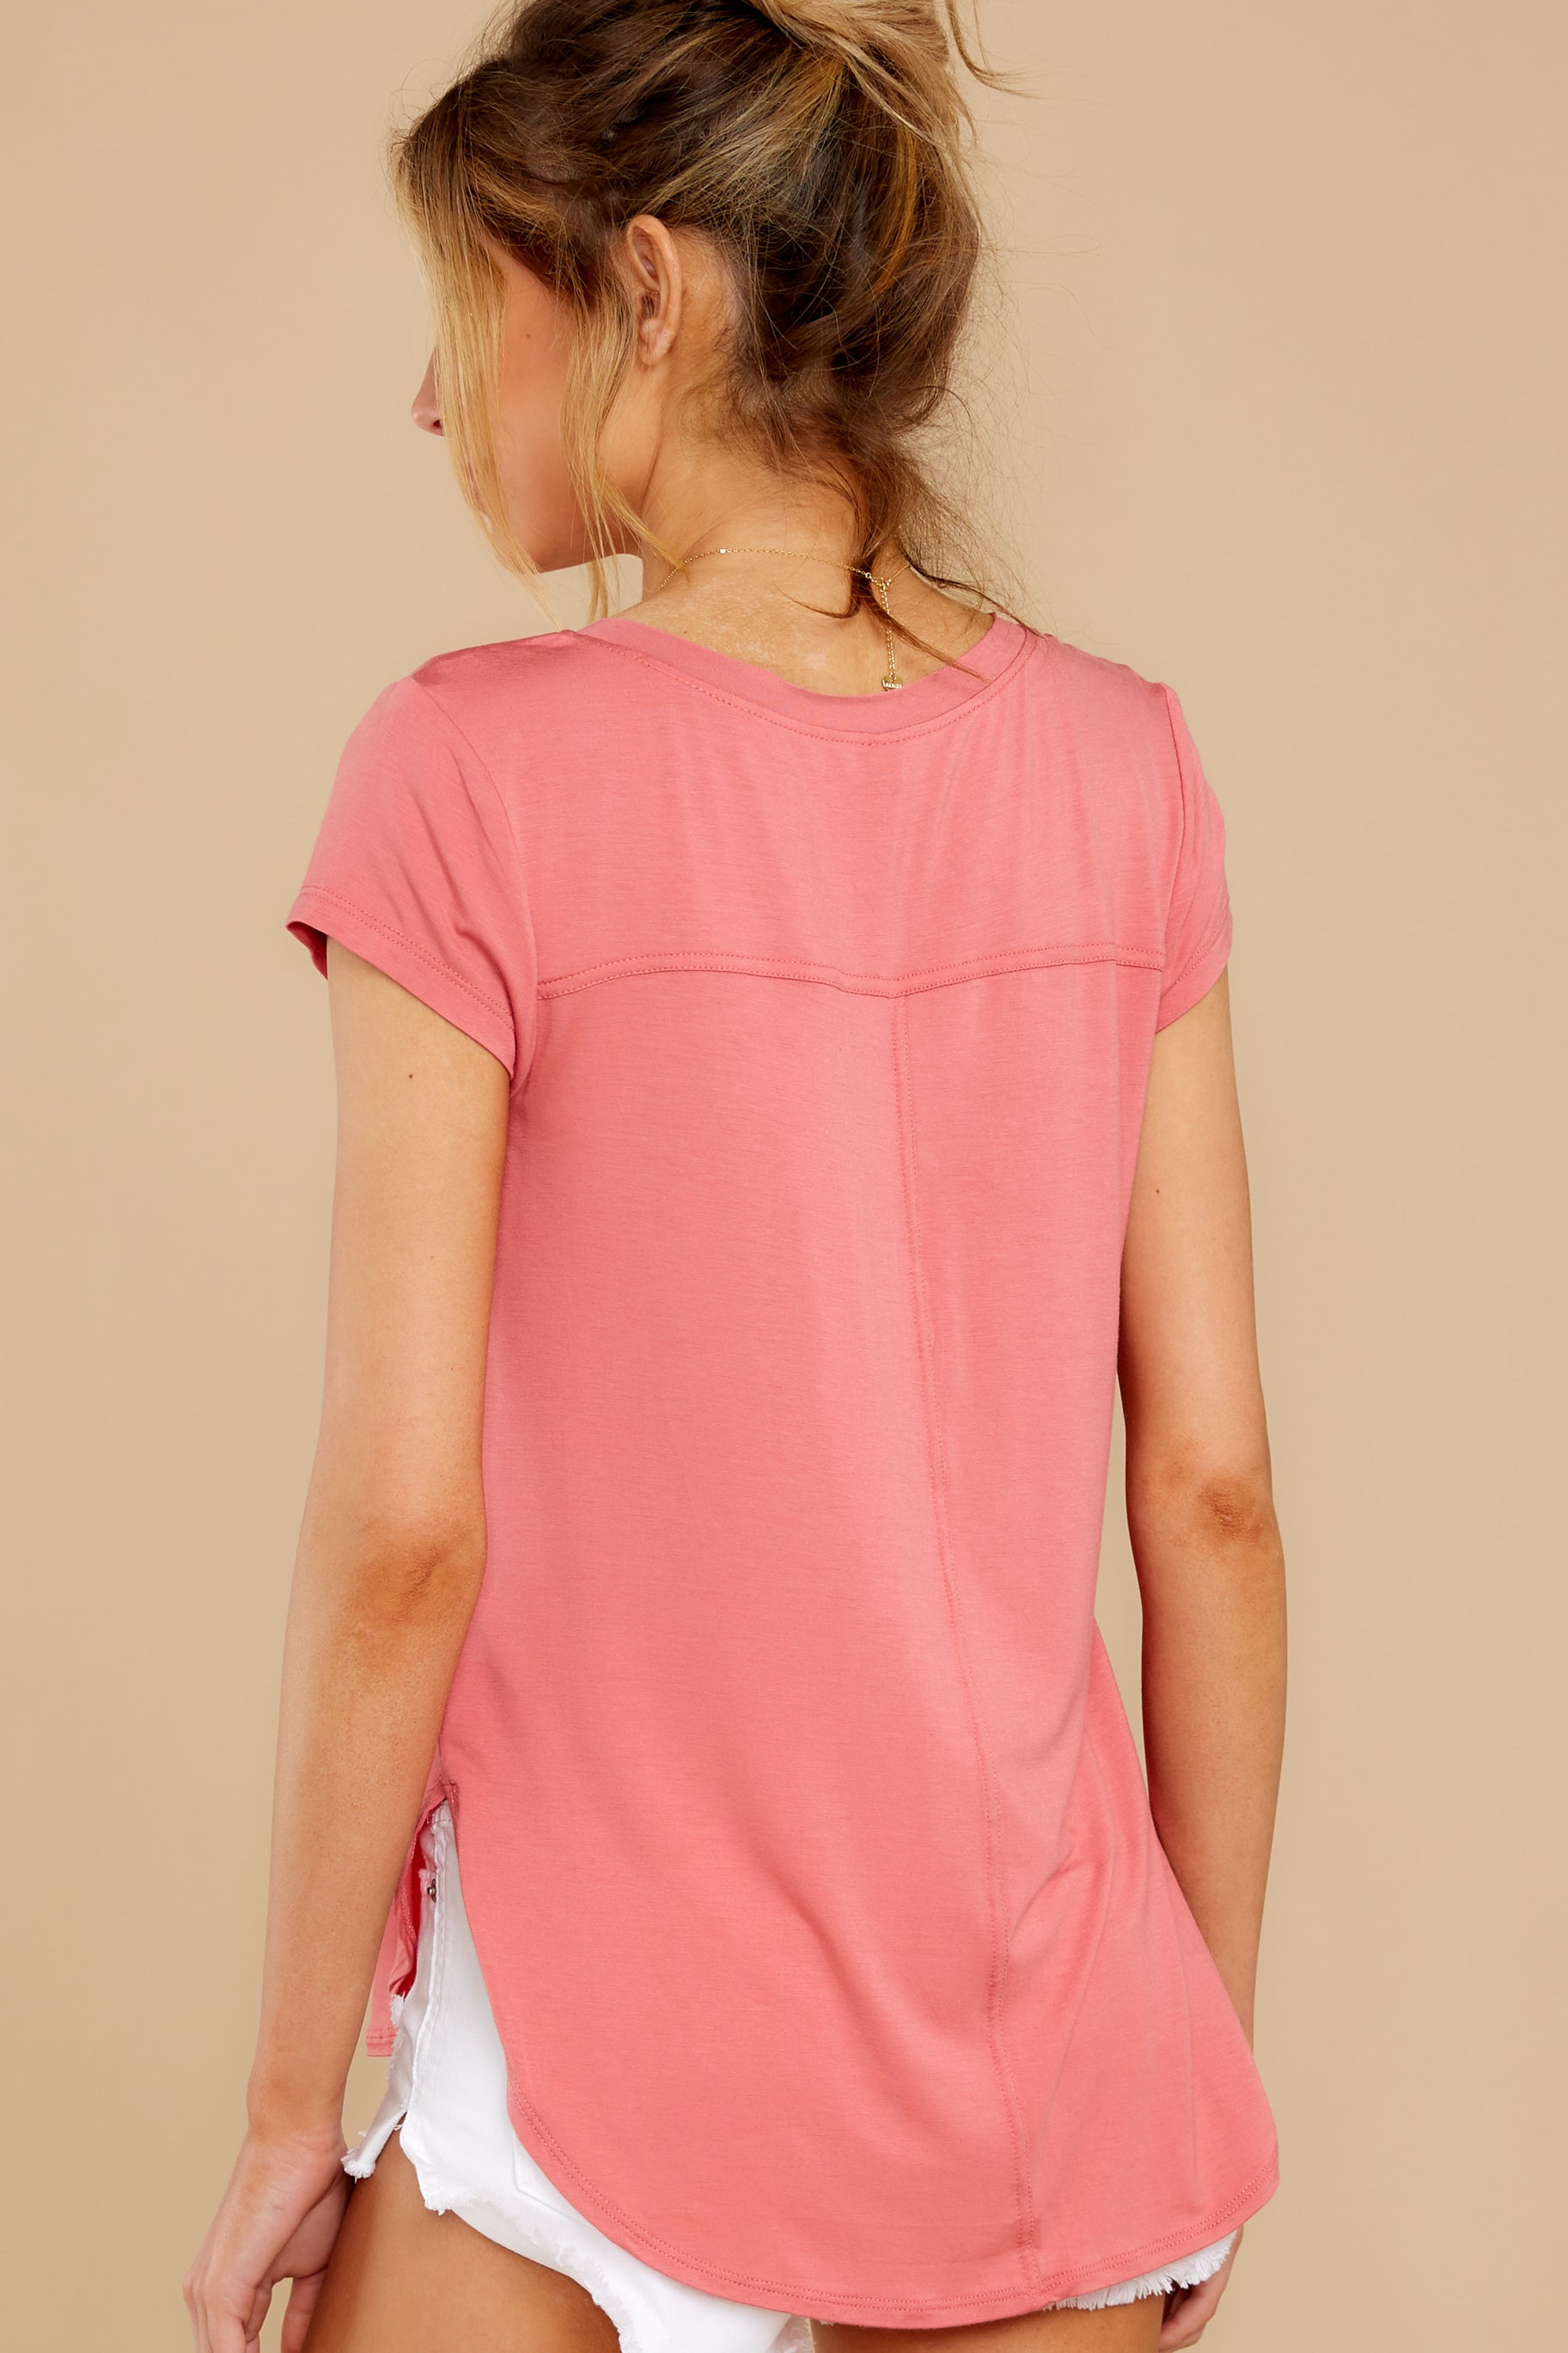 7 The Slate Rose Mya V Neck Tee at reddress.com